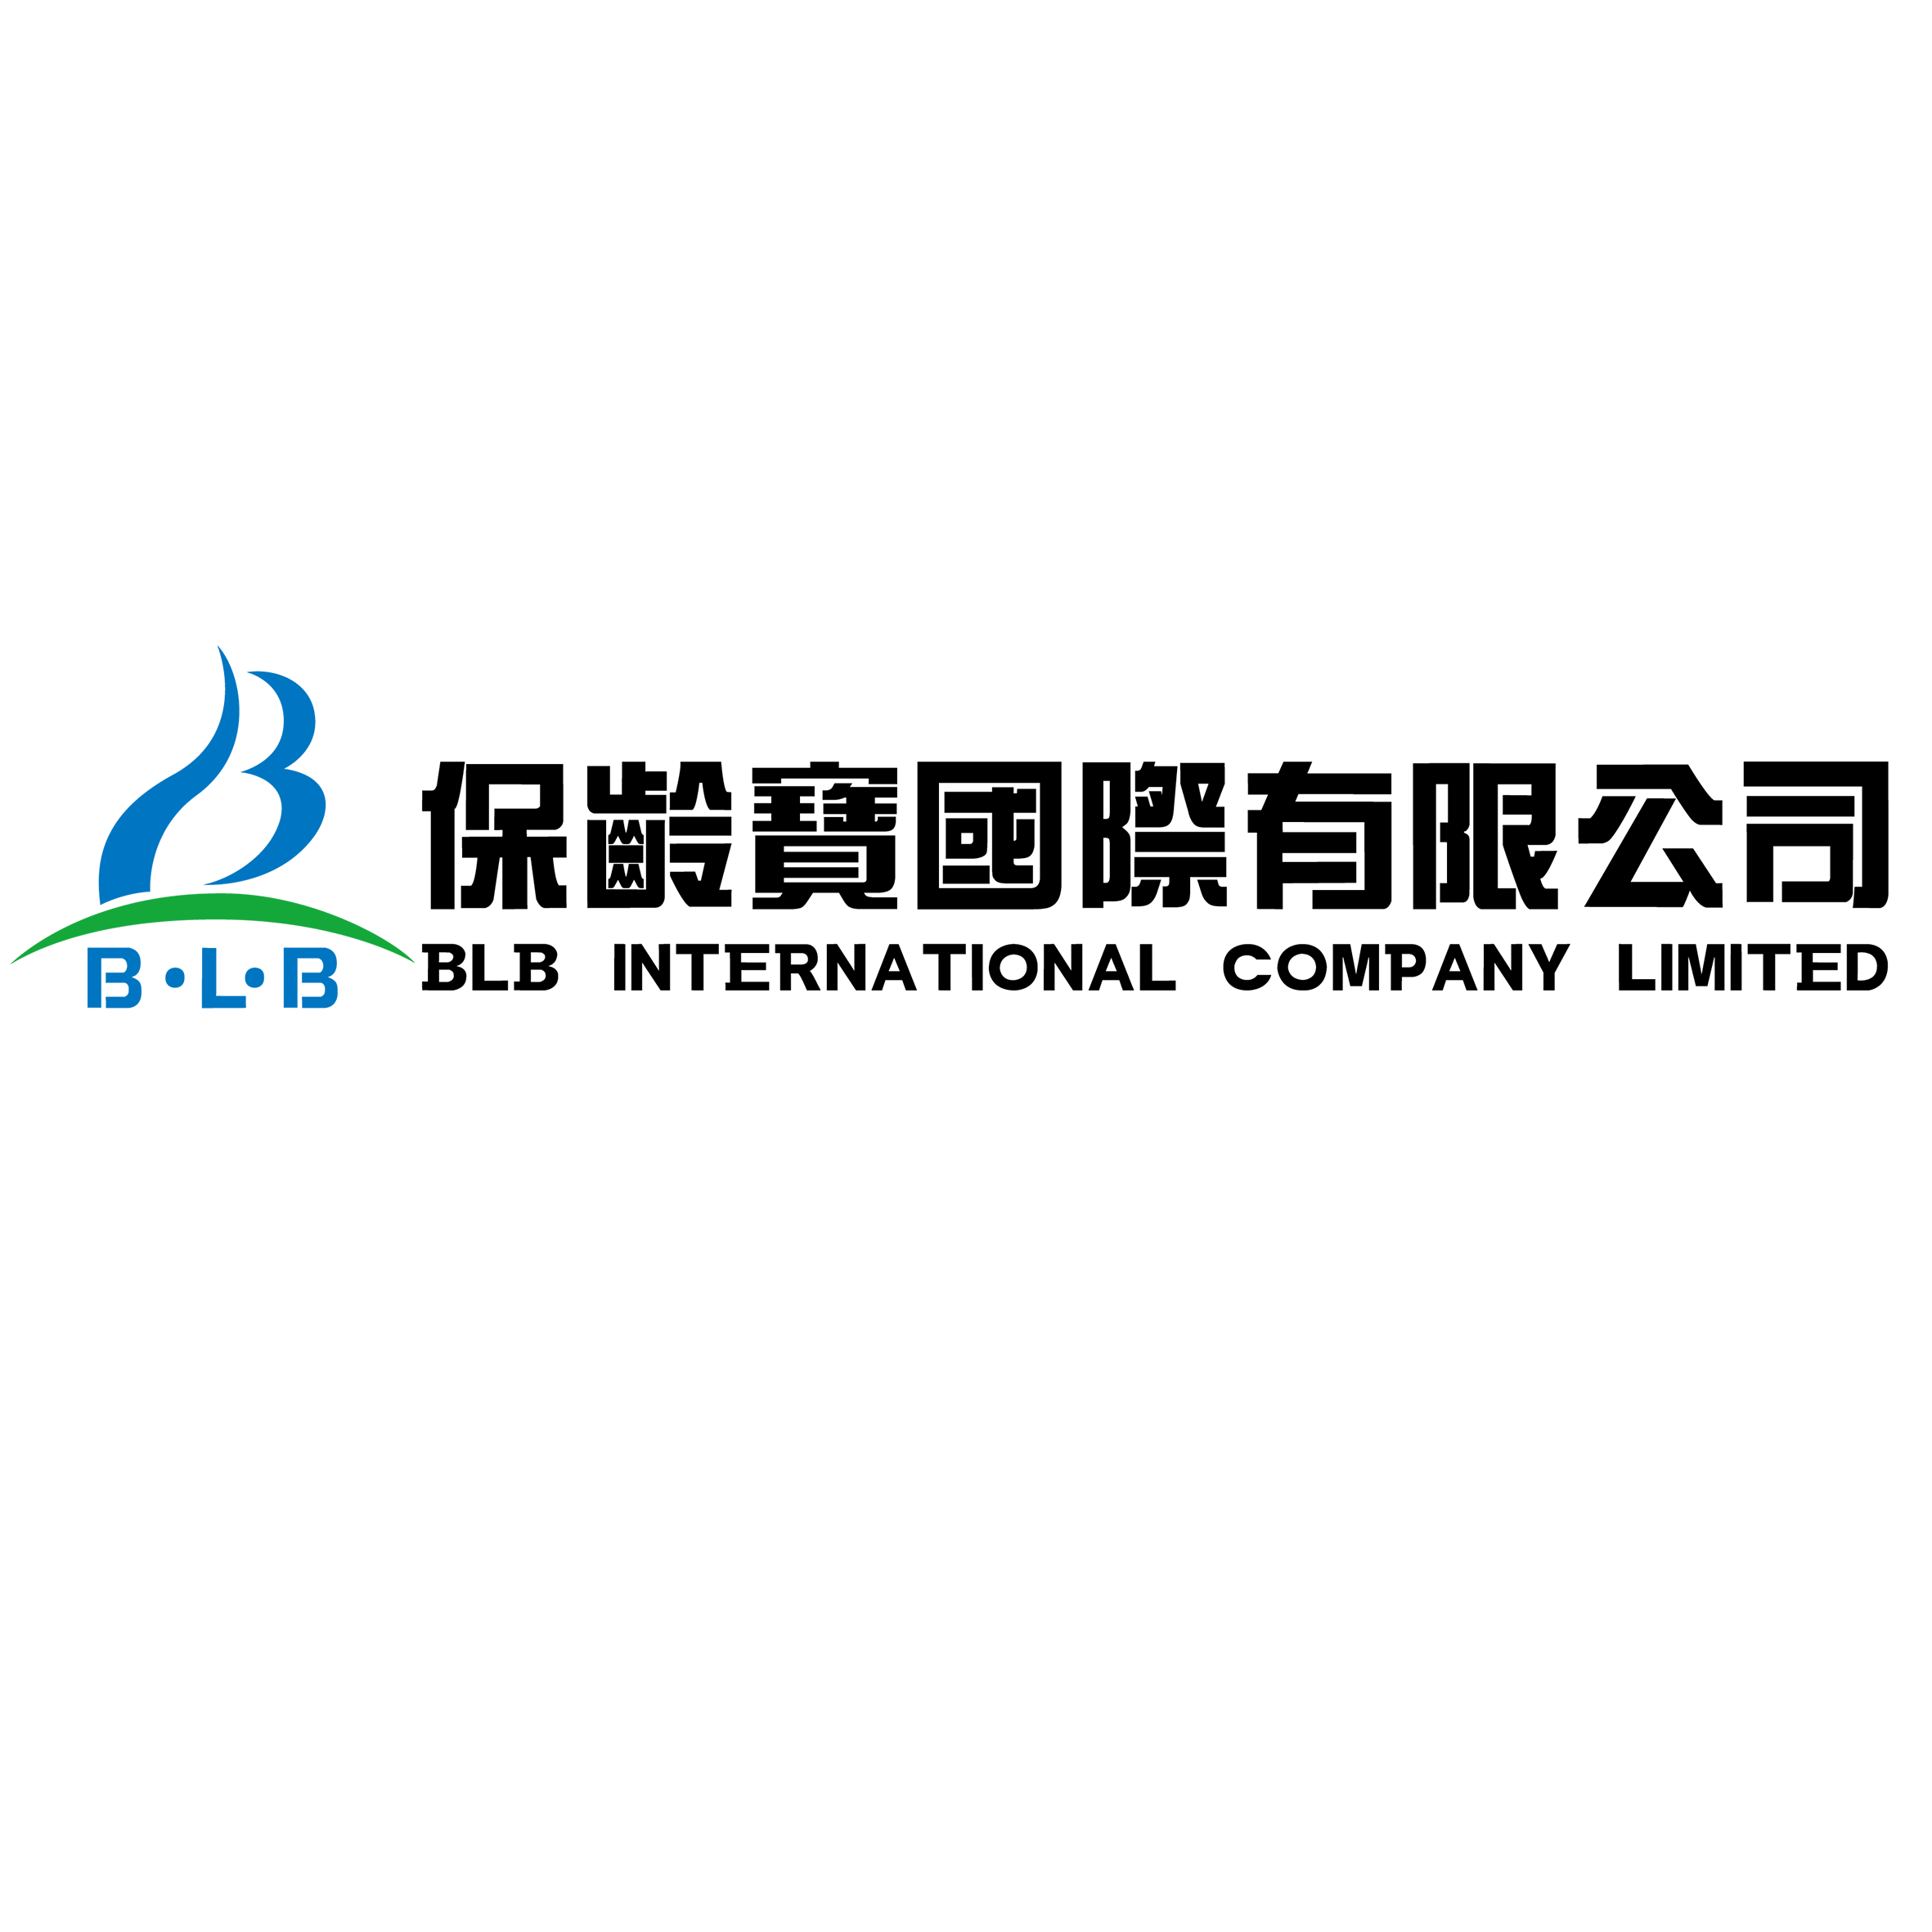 BLB International Company Limited